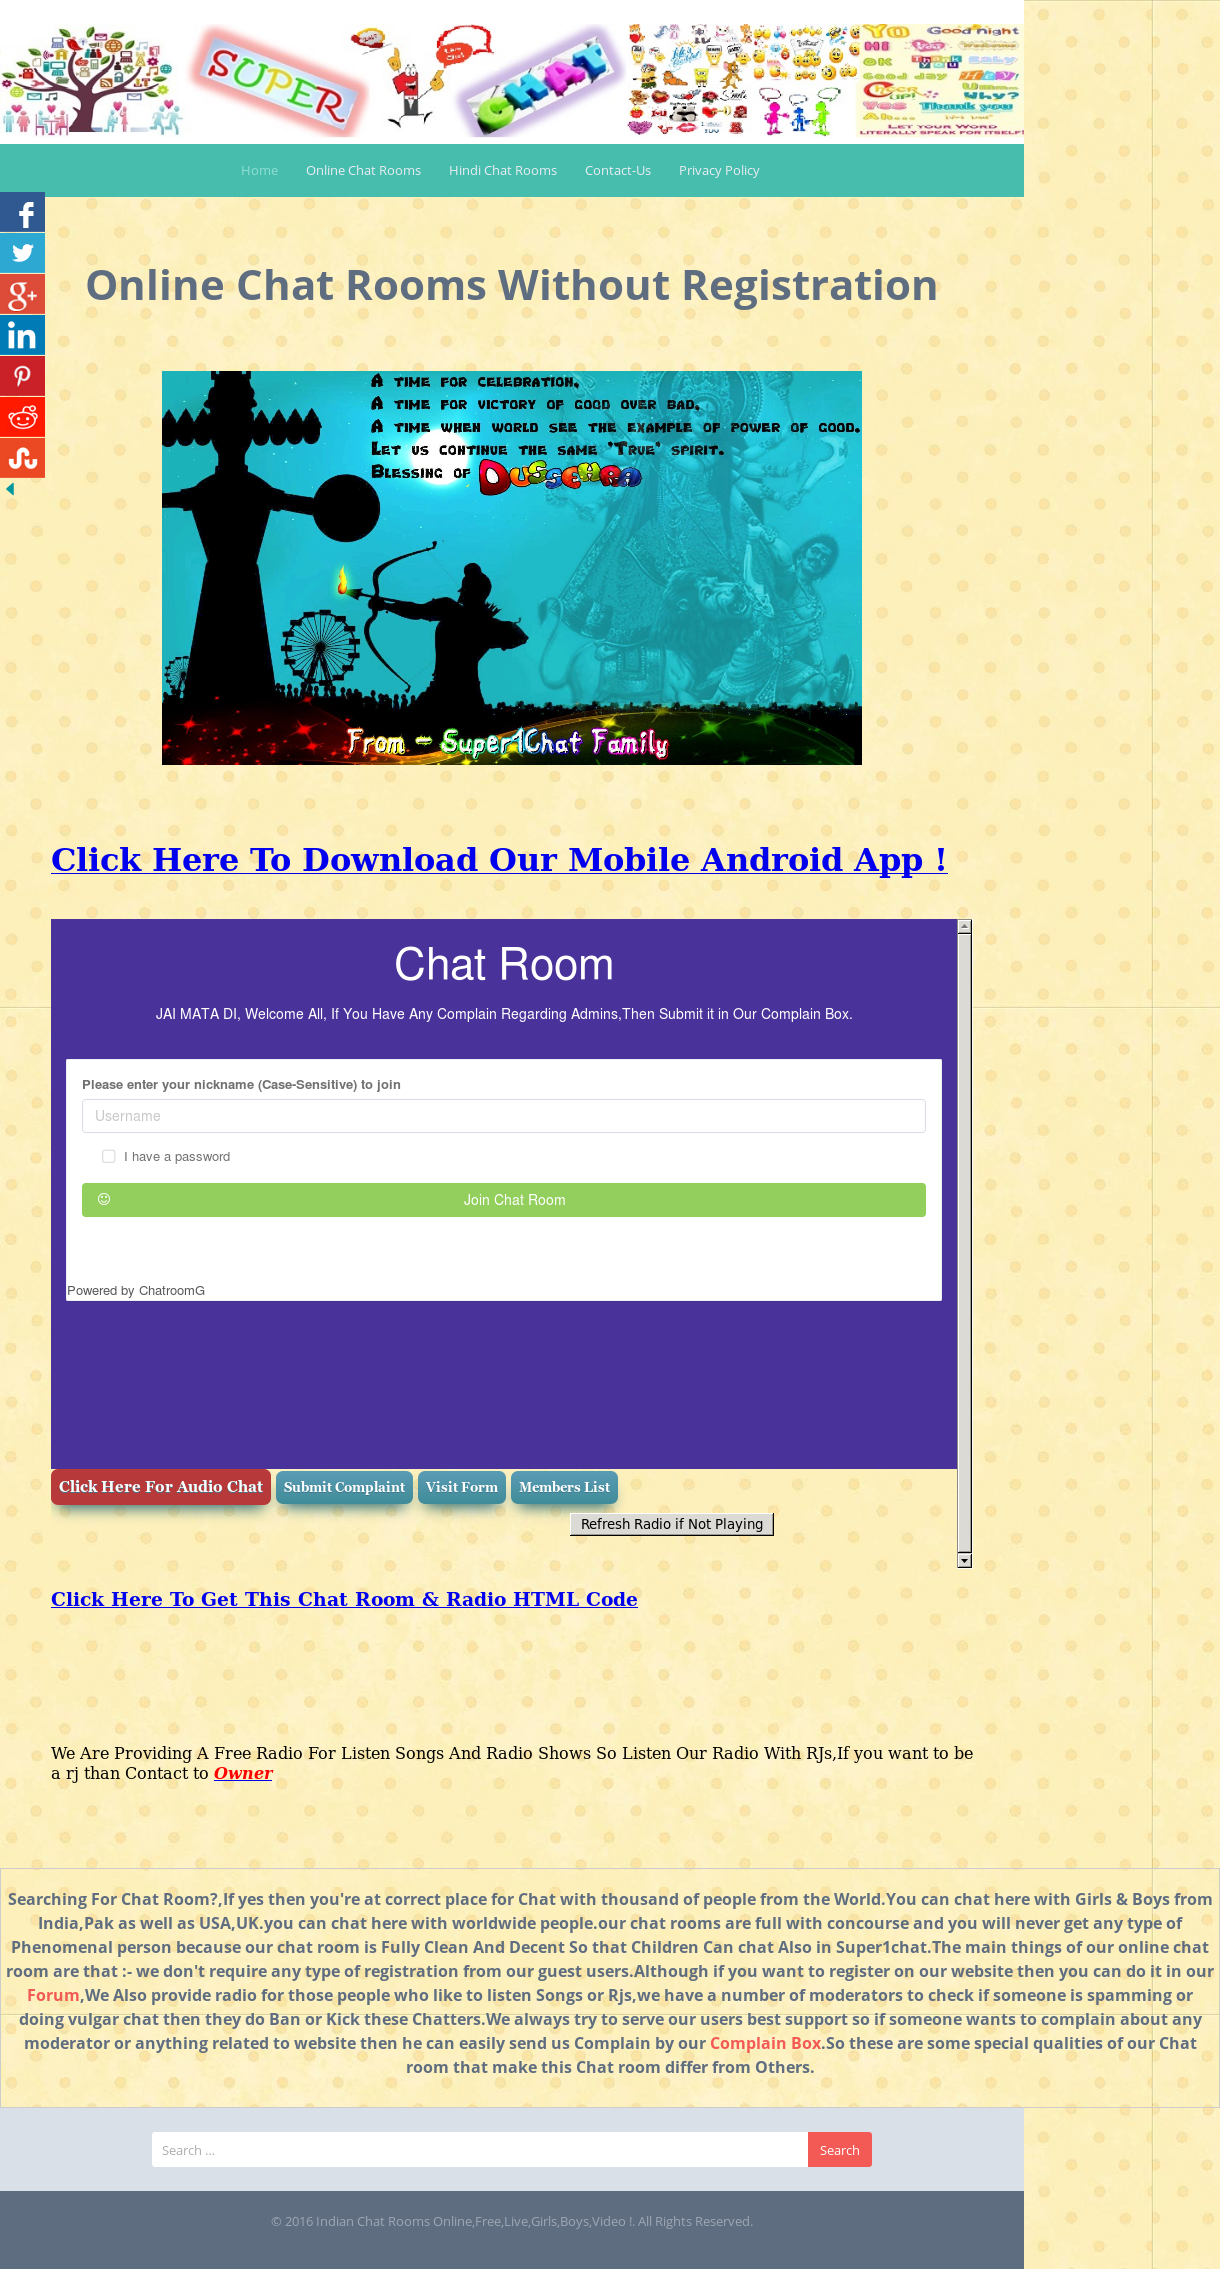 Super1chat Online Chat Rooms India Competitors, Revenue and